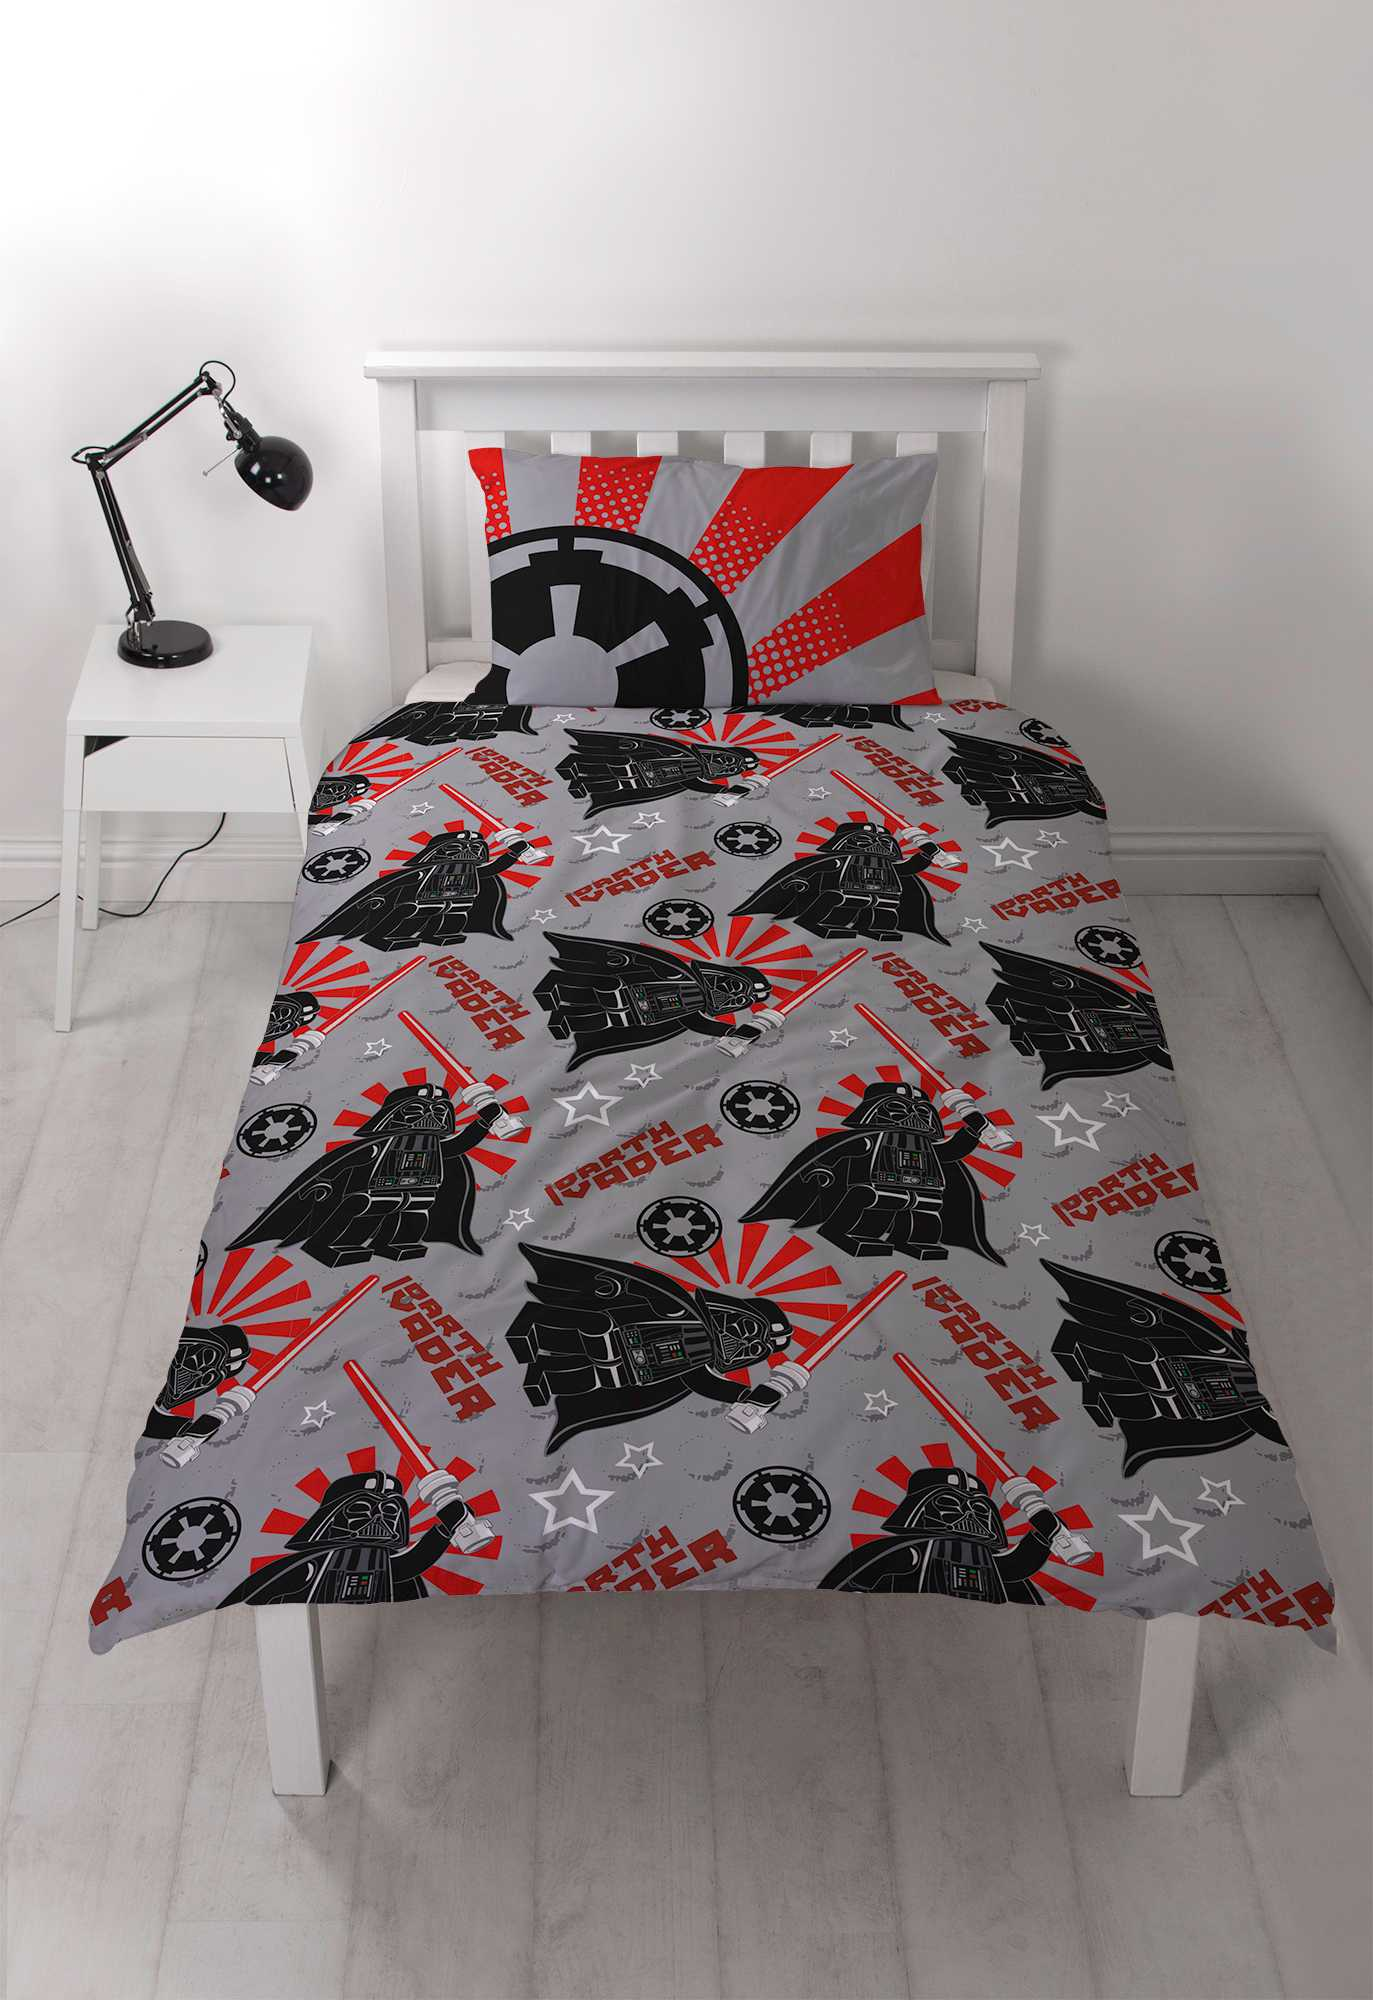 Stormtrooper Bed Sheets New Lego Star Wars Darth Vader Single Duvet Quilt Cover